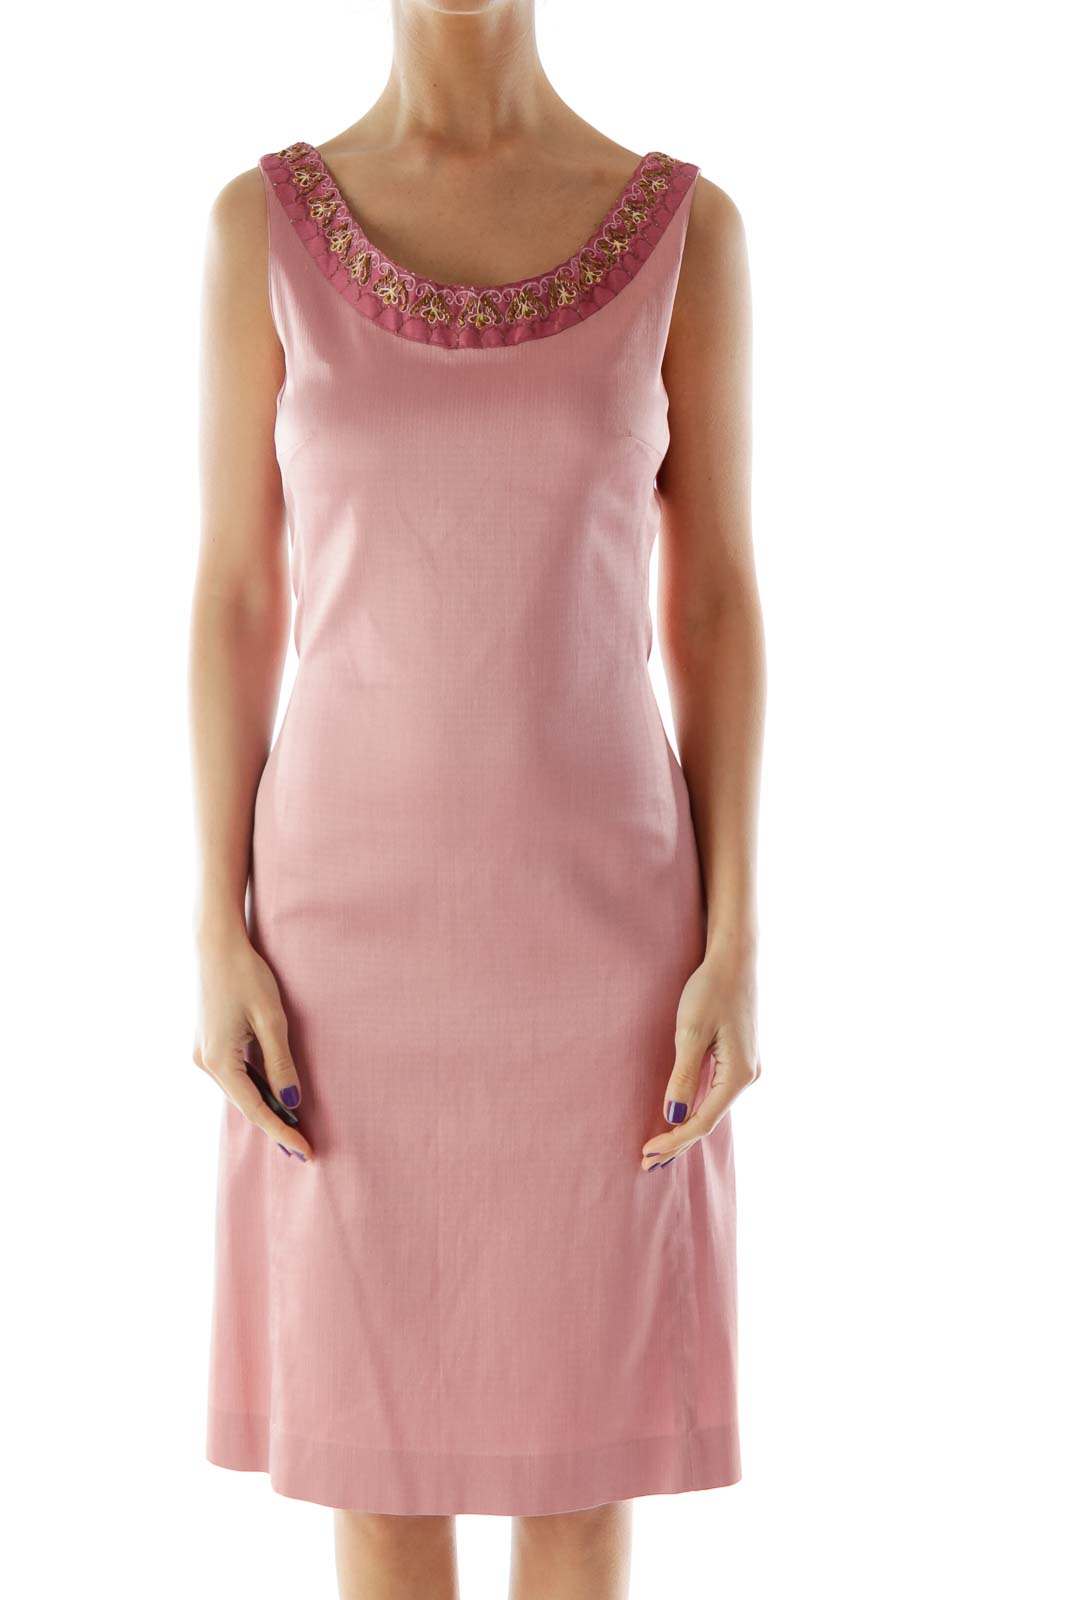 Pink Beaded Embroidered Dress